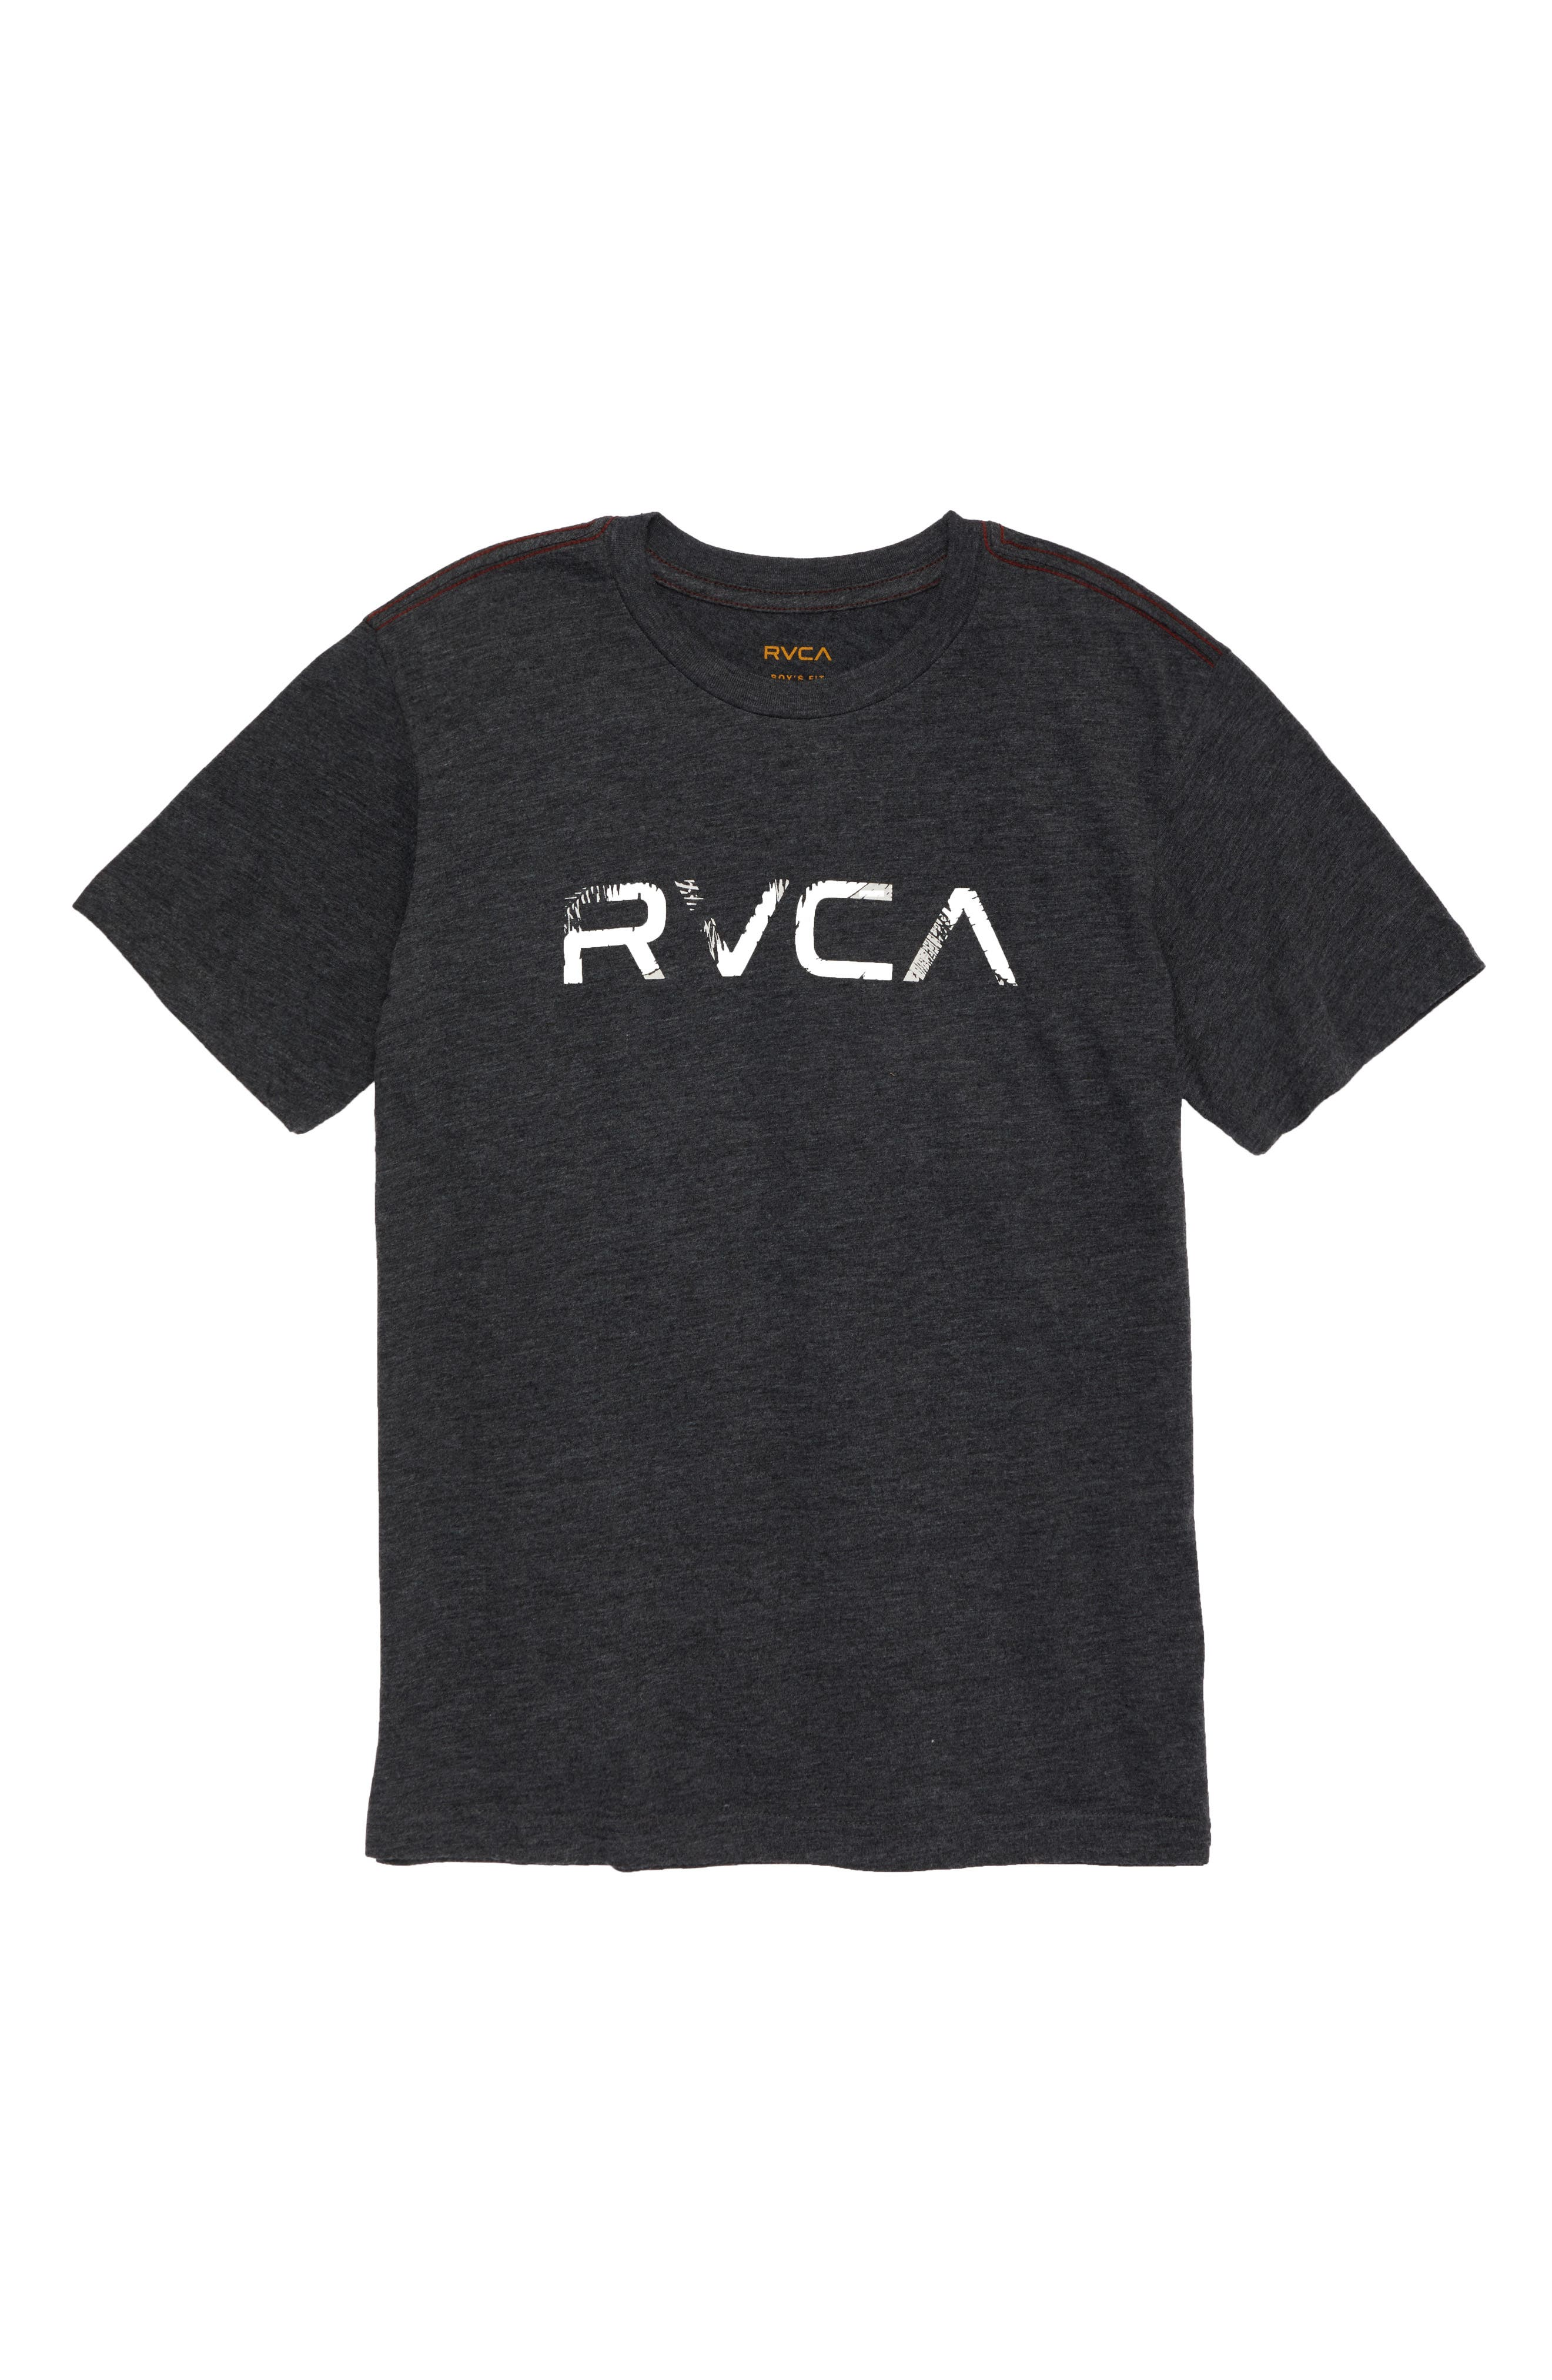 RVCA Logo Graphic T-Shirt (Big Boys)